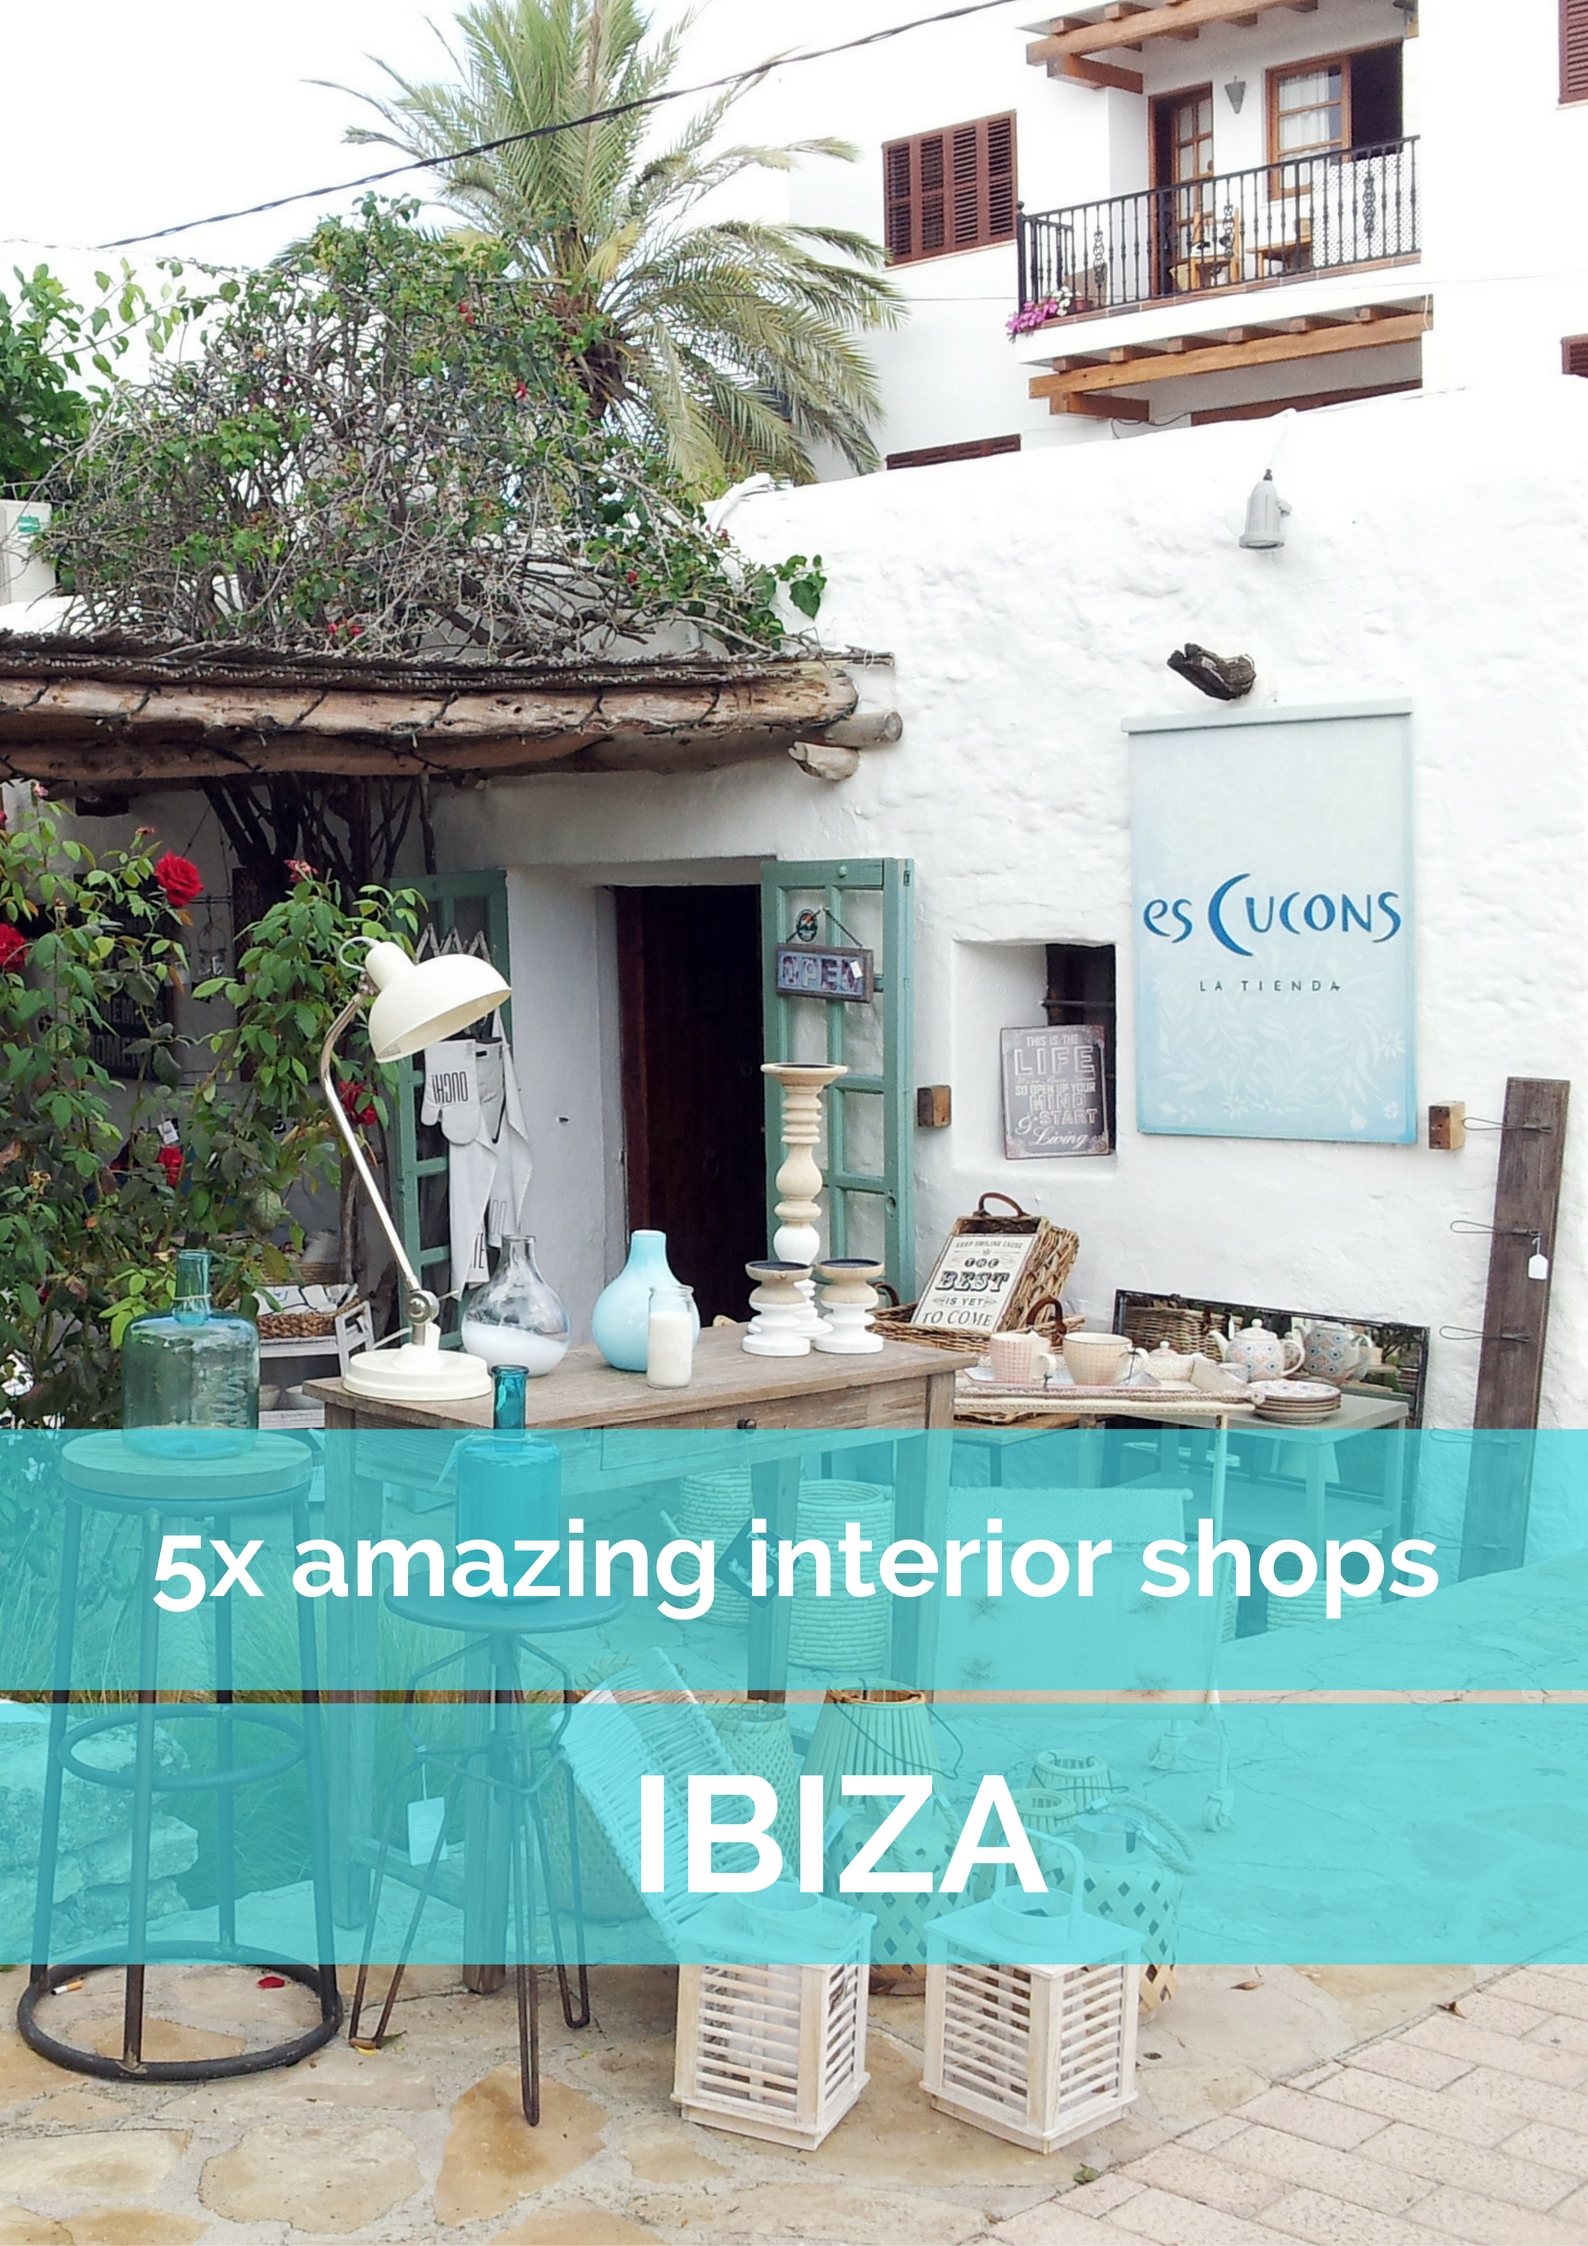 5x amazing interior shops on Ibiza, Spain - Map of Joy